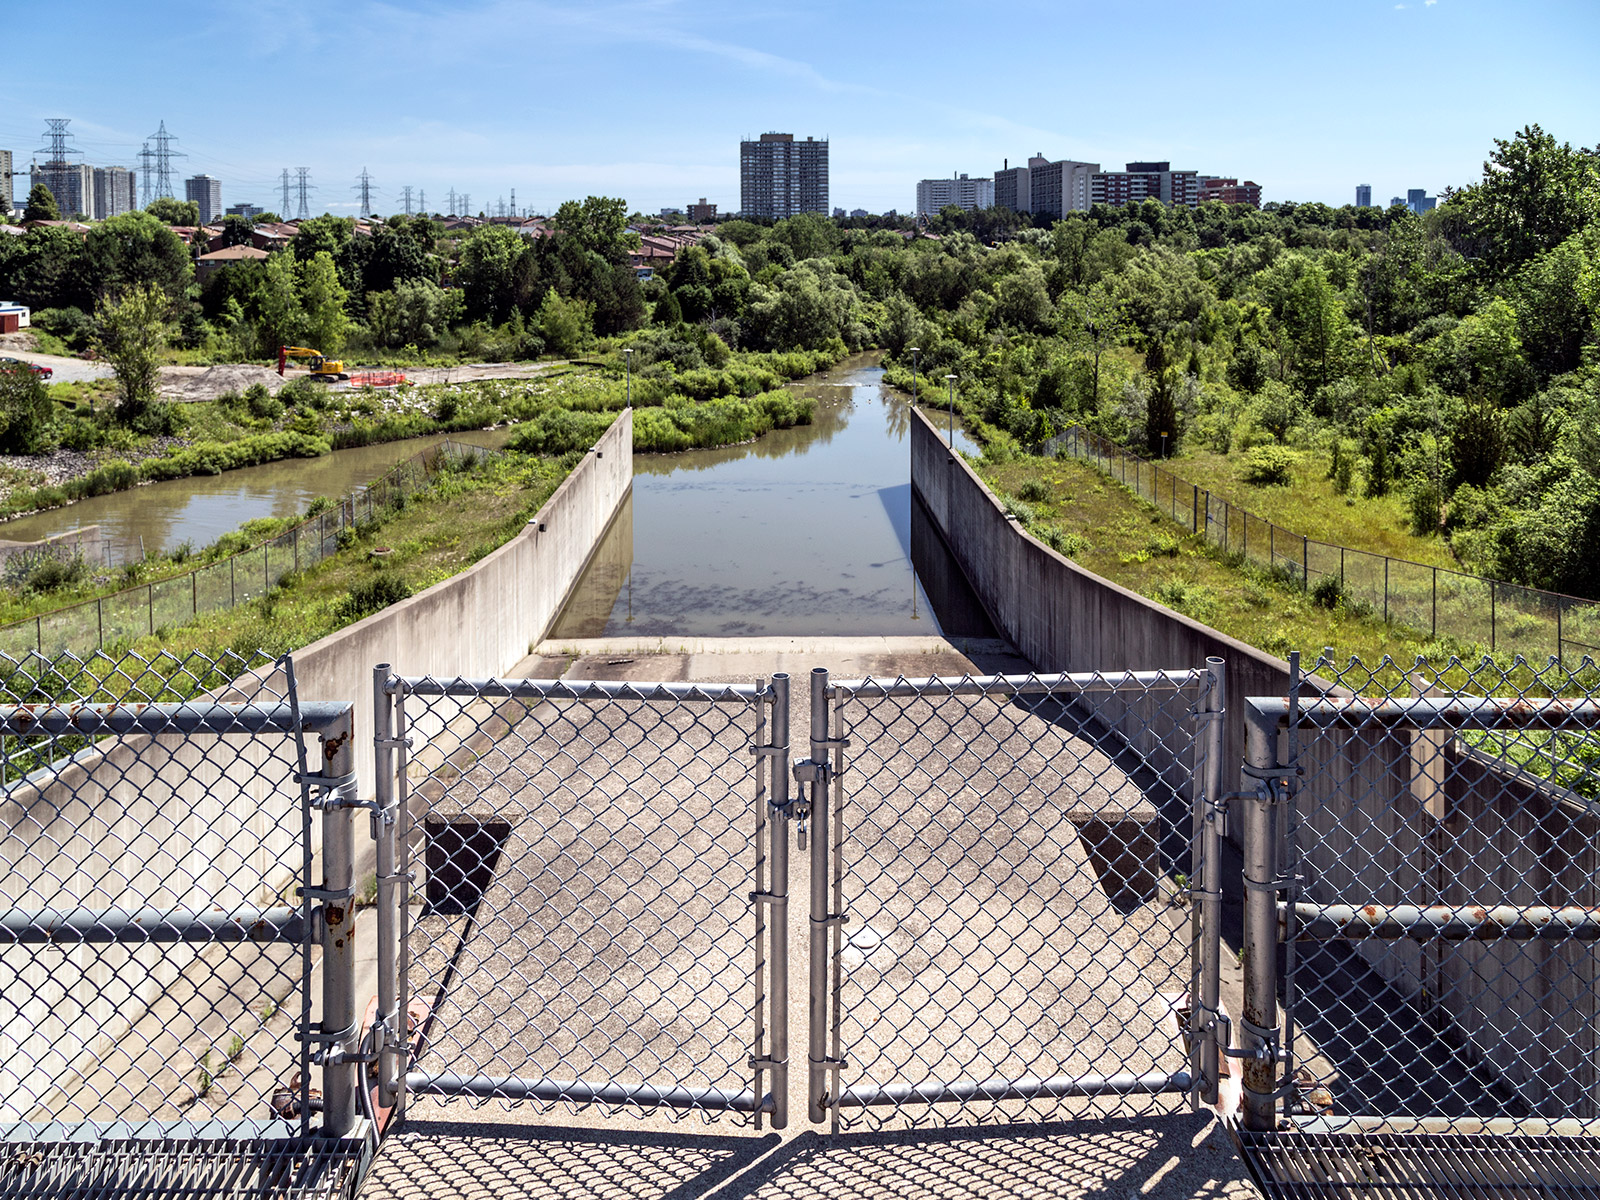 20150908. Looking down the spillway of Toronto's G. Ross Lord Fl